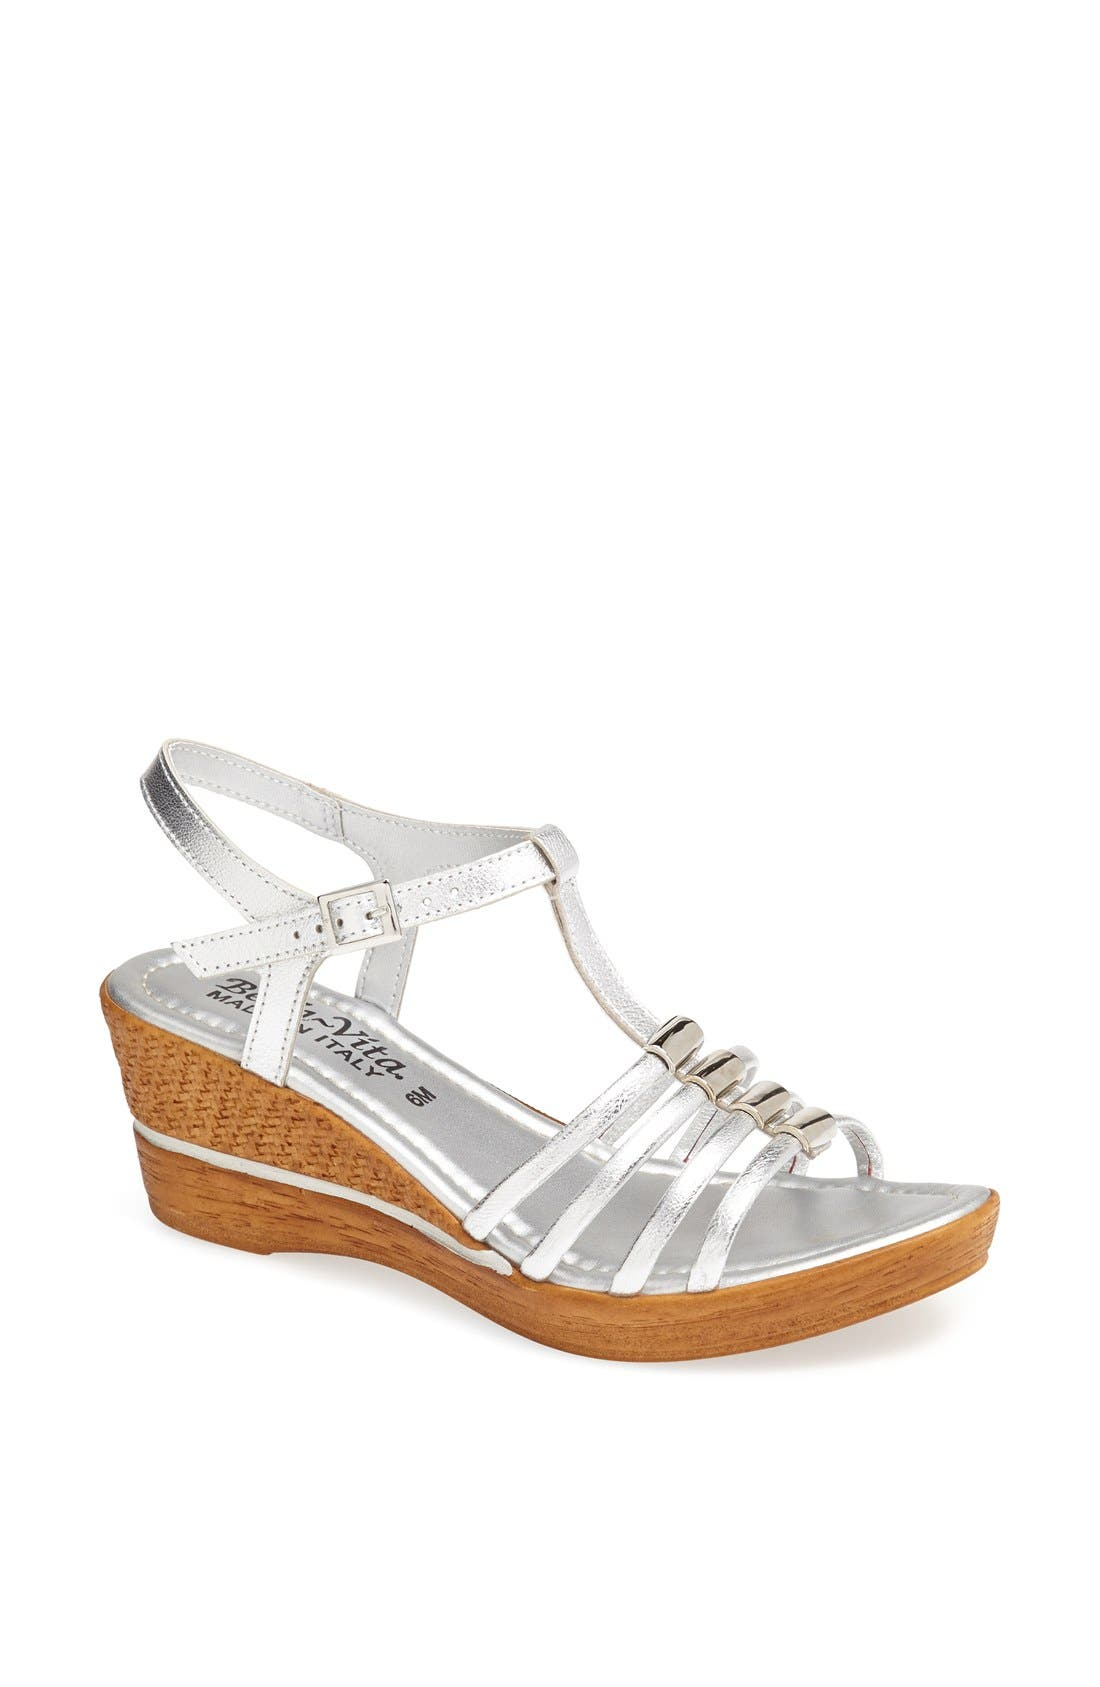 Alternate Image 1 Selected - Bella Vita 'Caramelle' Sandal